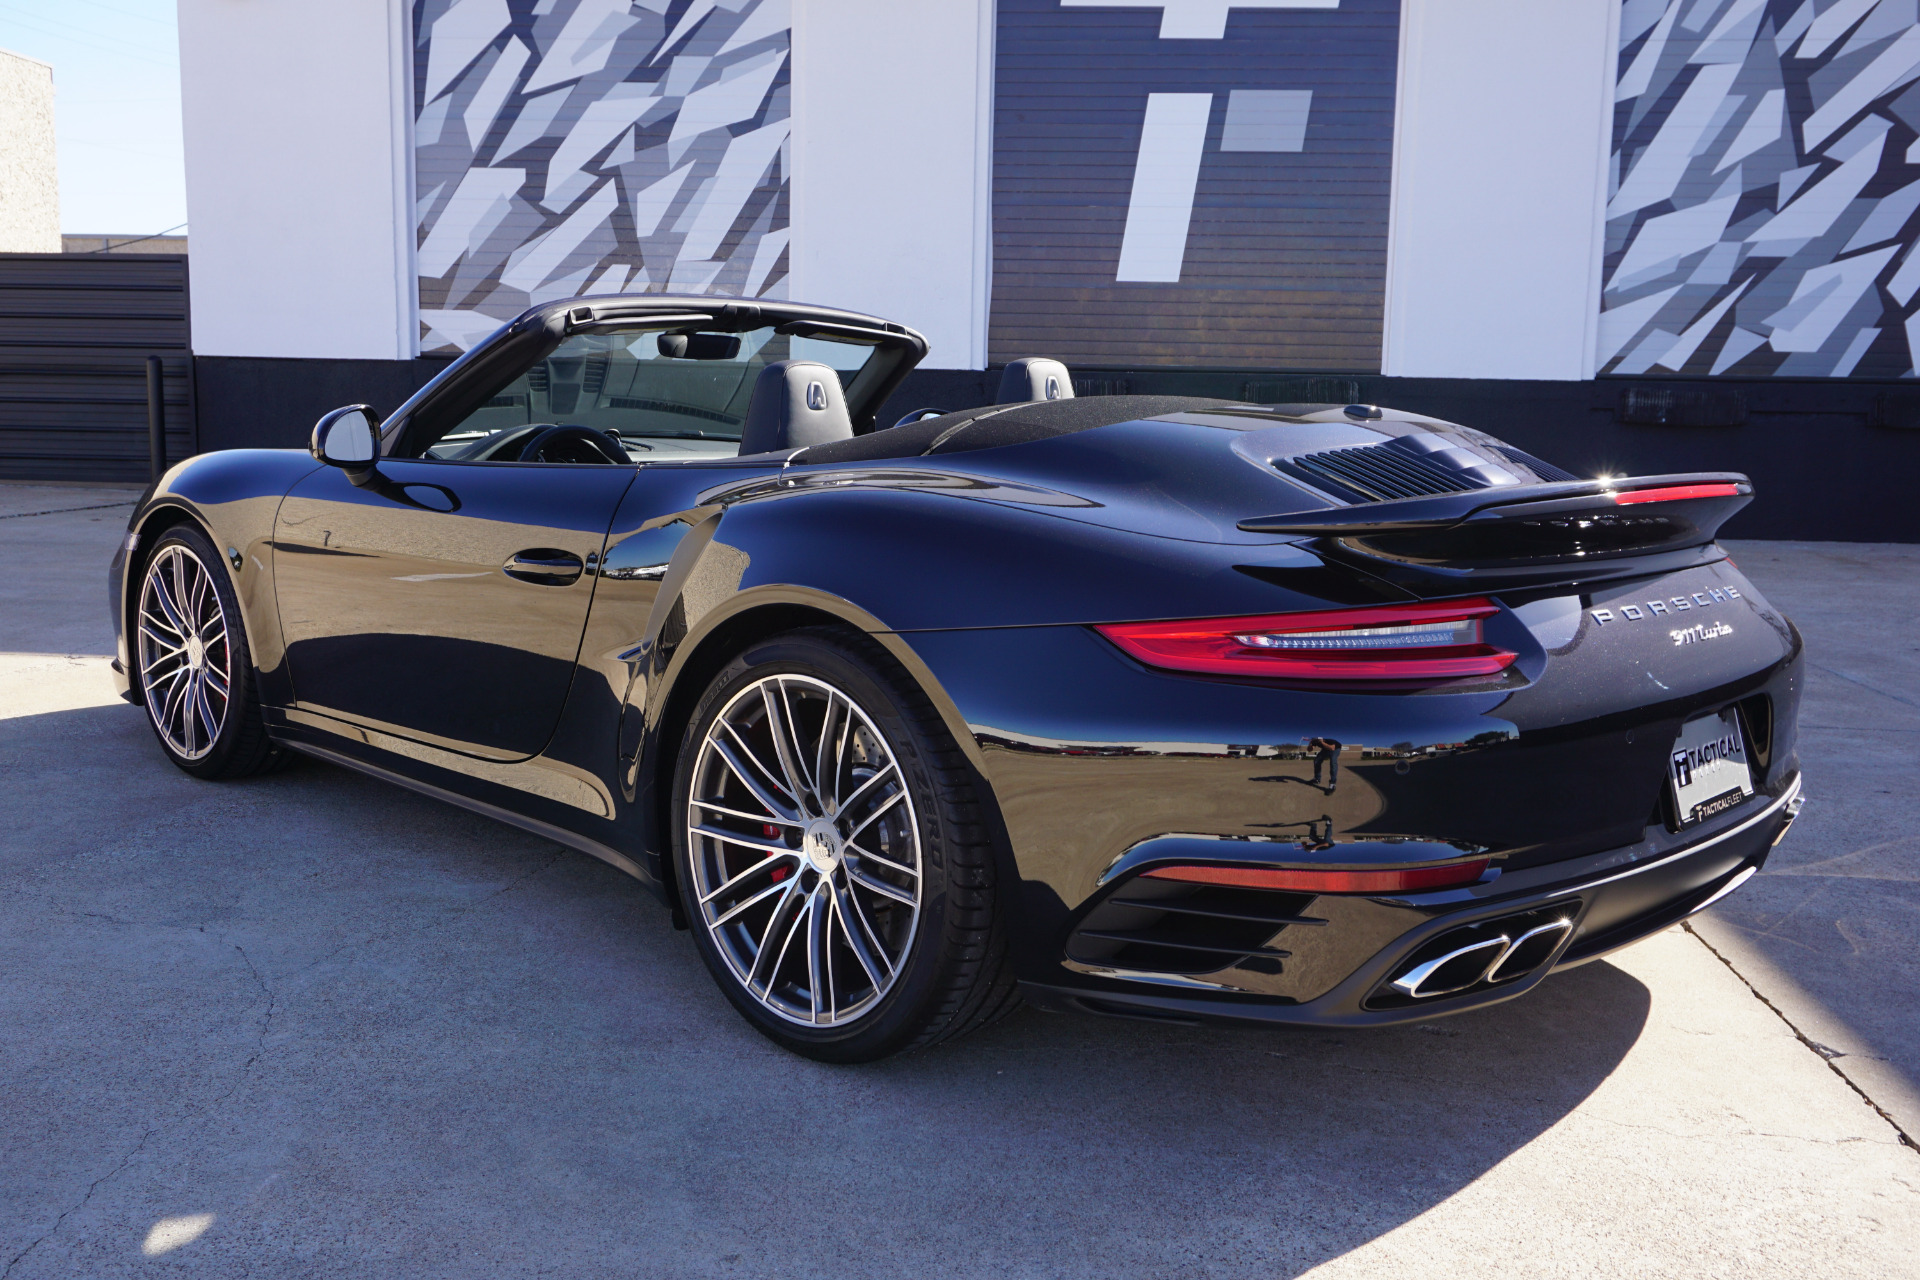 Car Loan Calculator Kbb >> Used 2017 Porsche 911 Turbo For Sale ($153,900) | Tactical Fleet Stock #TF1137